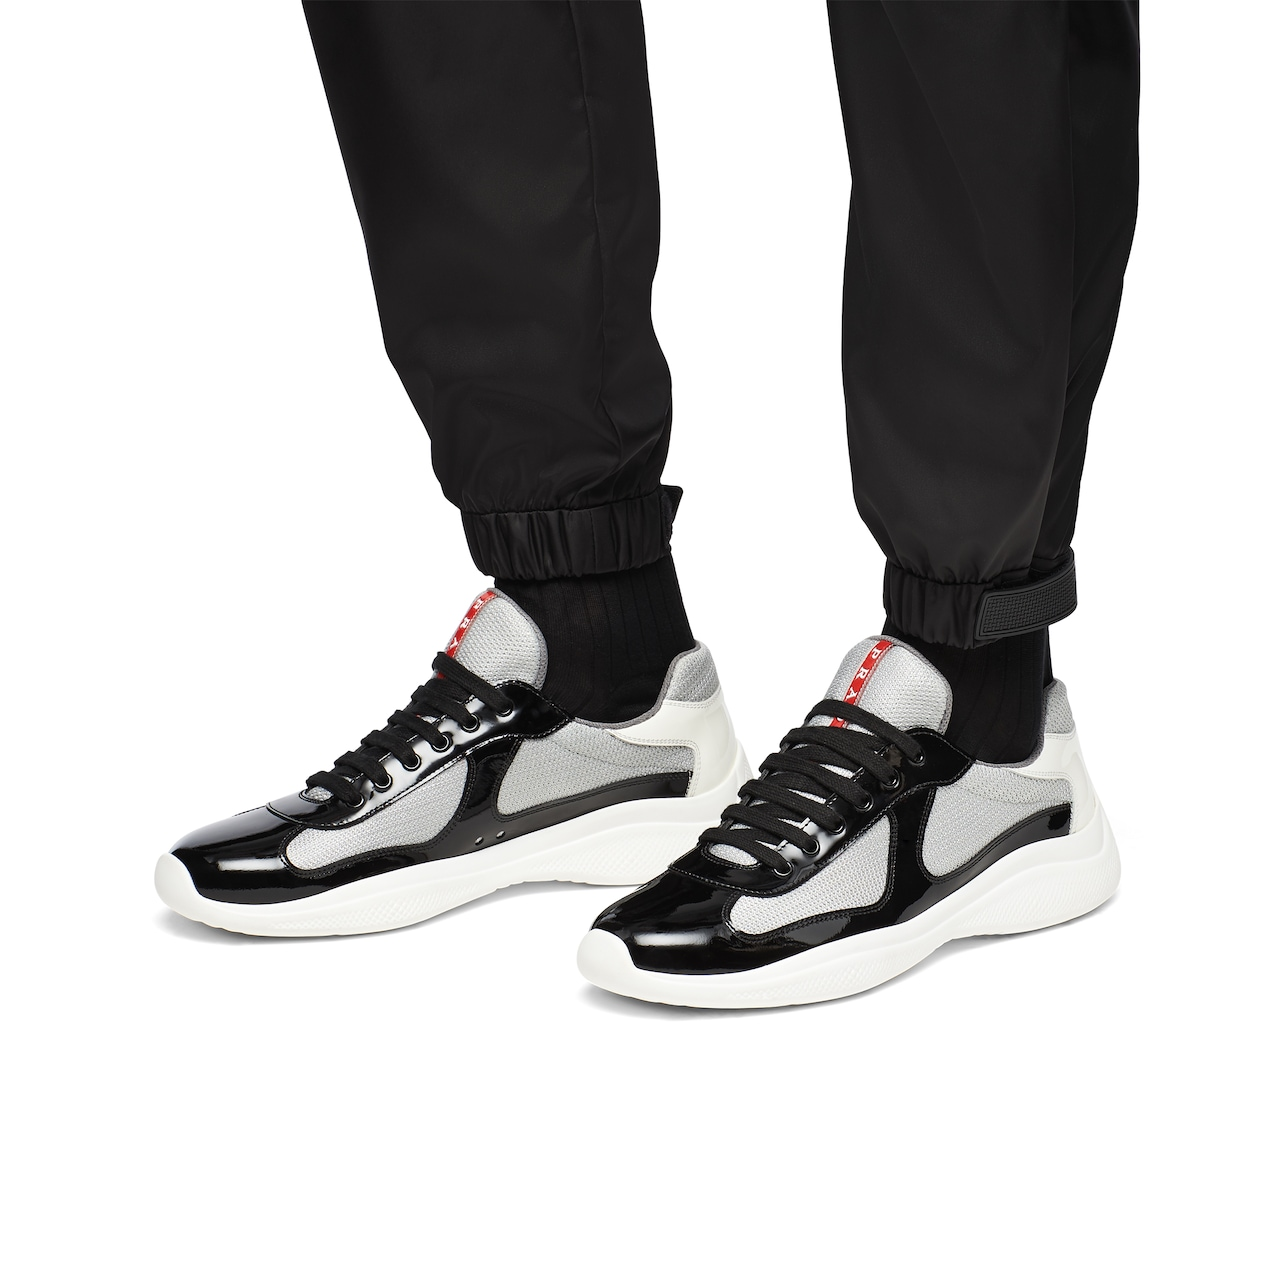 Prada America's Cup patent leather and nylon sneakers 3